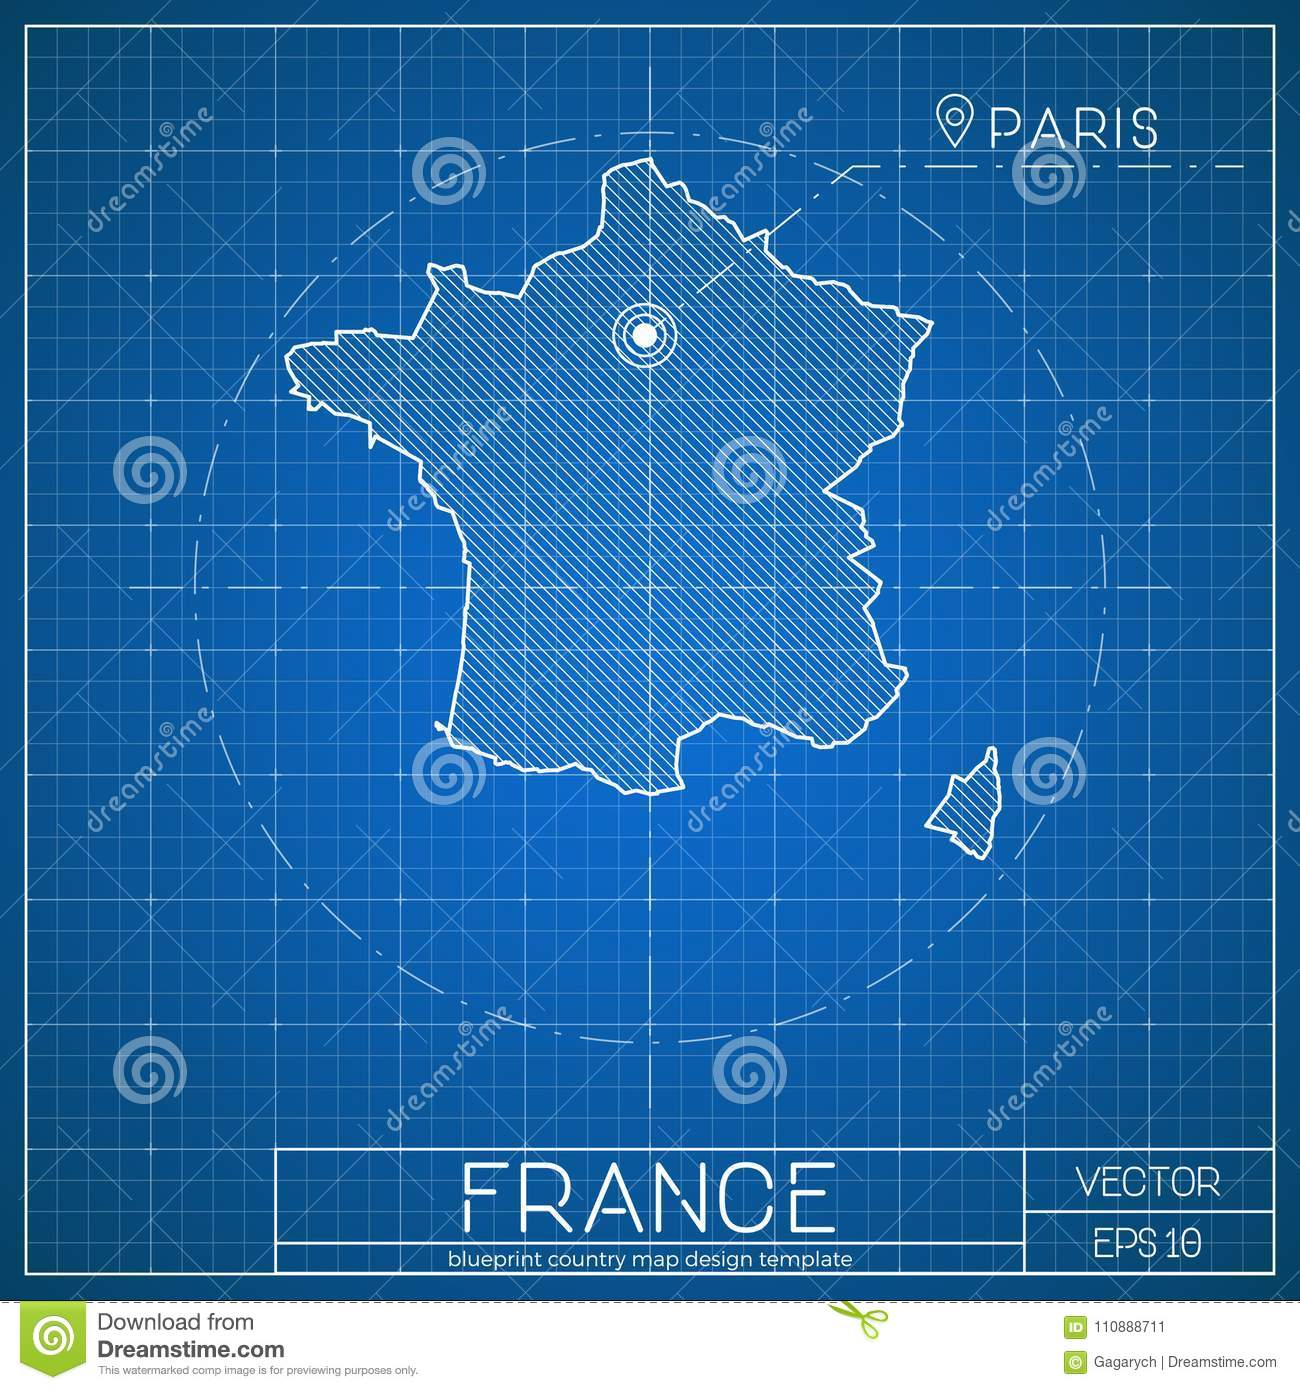 France blueprint map template with capital city stock vector france blueprint map template with capital city malvernweather Images